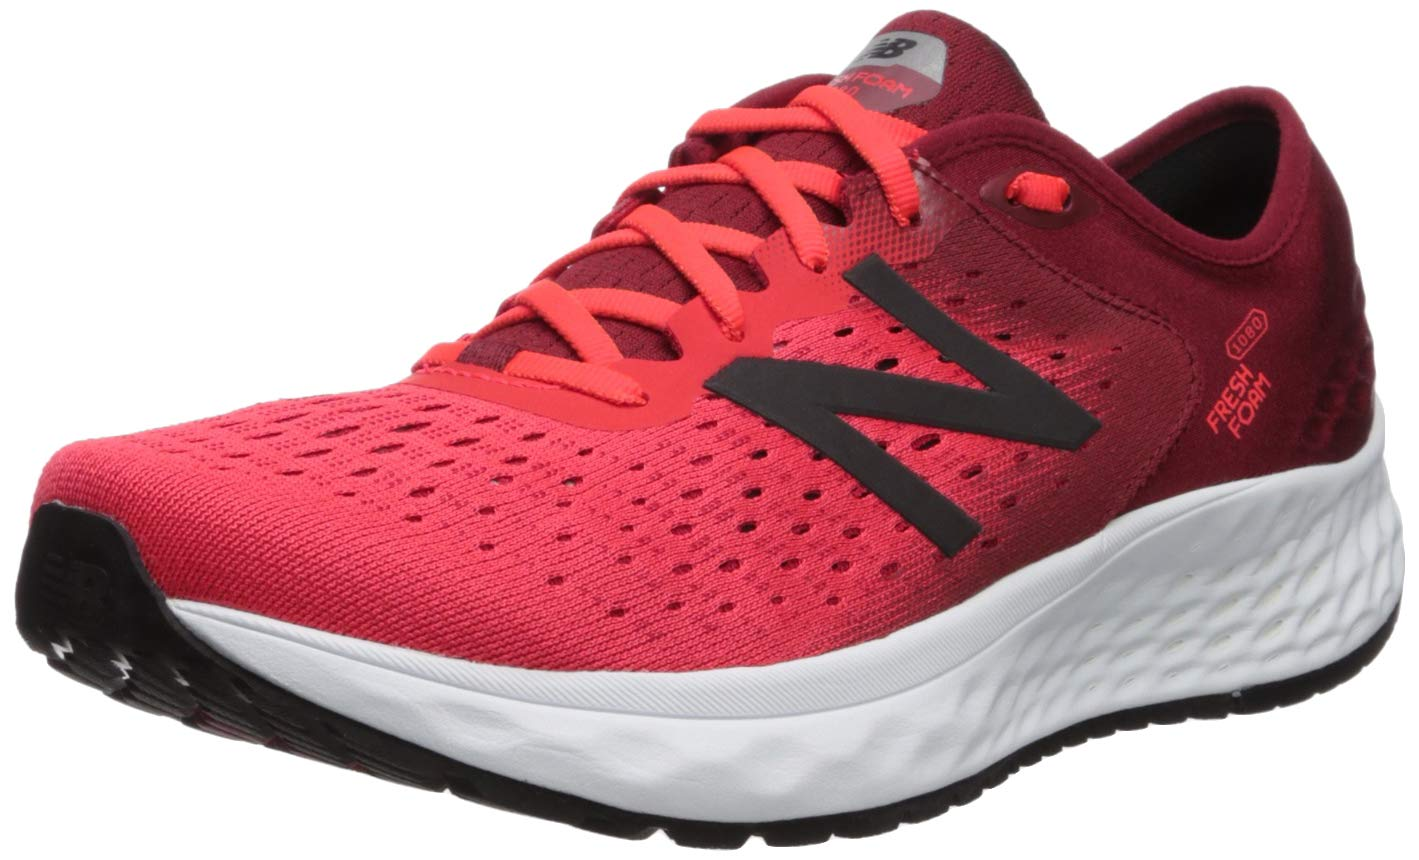 New Balance Men's 1080v9 Fresh Foam Running Shoe, Energy red/Nubuck Scarlet/Black, 7 W US by New Balance (Image #1)